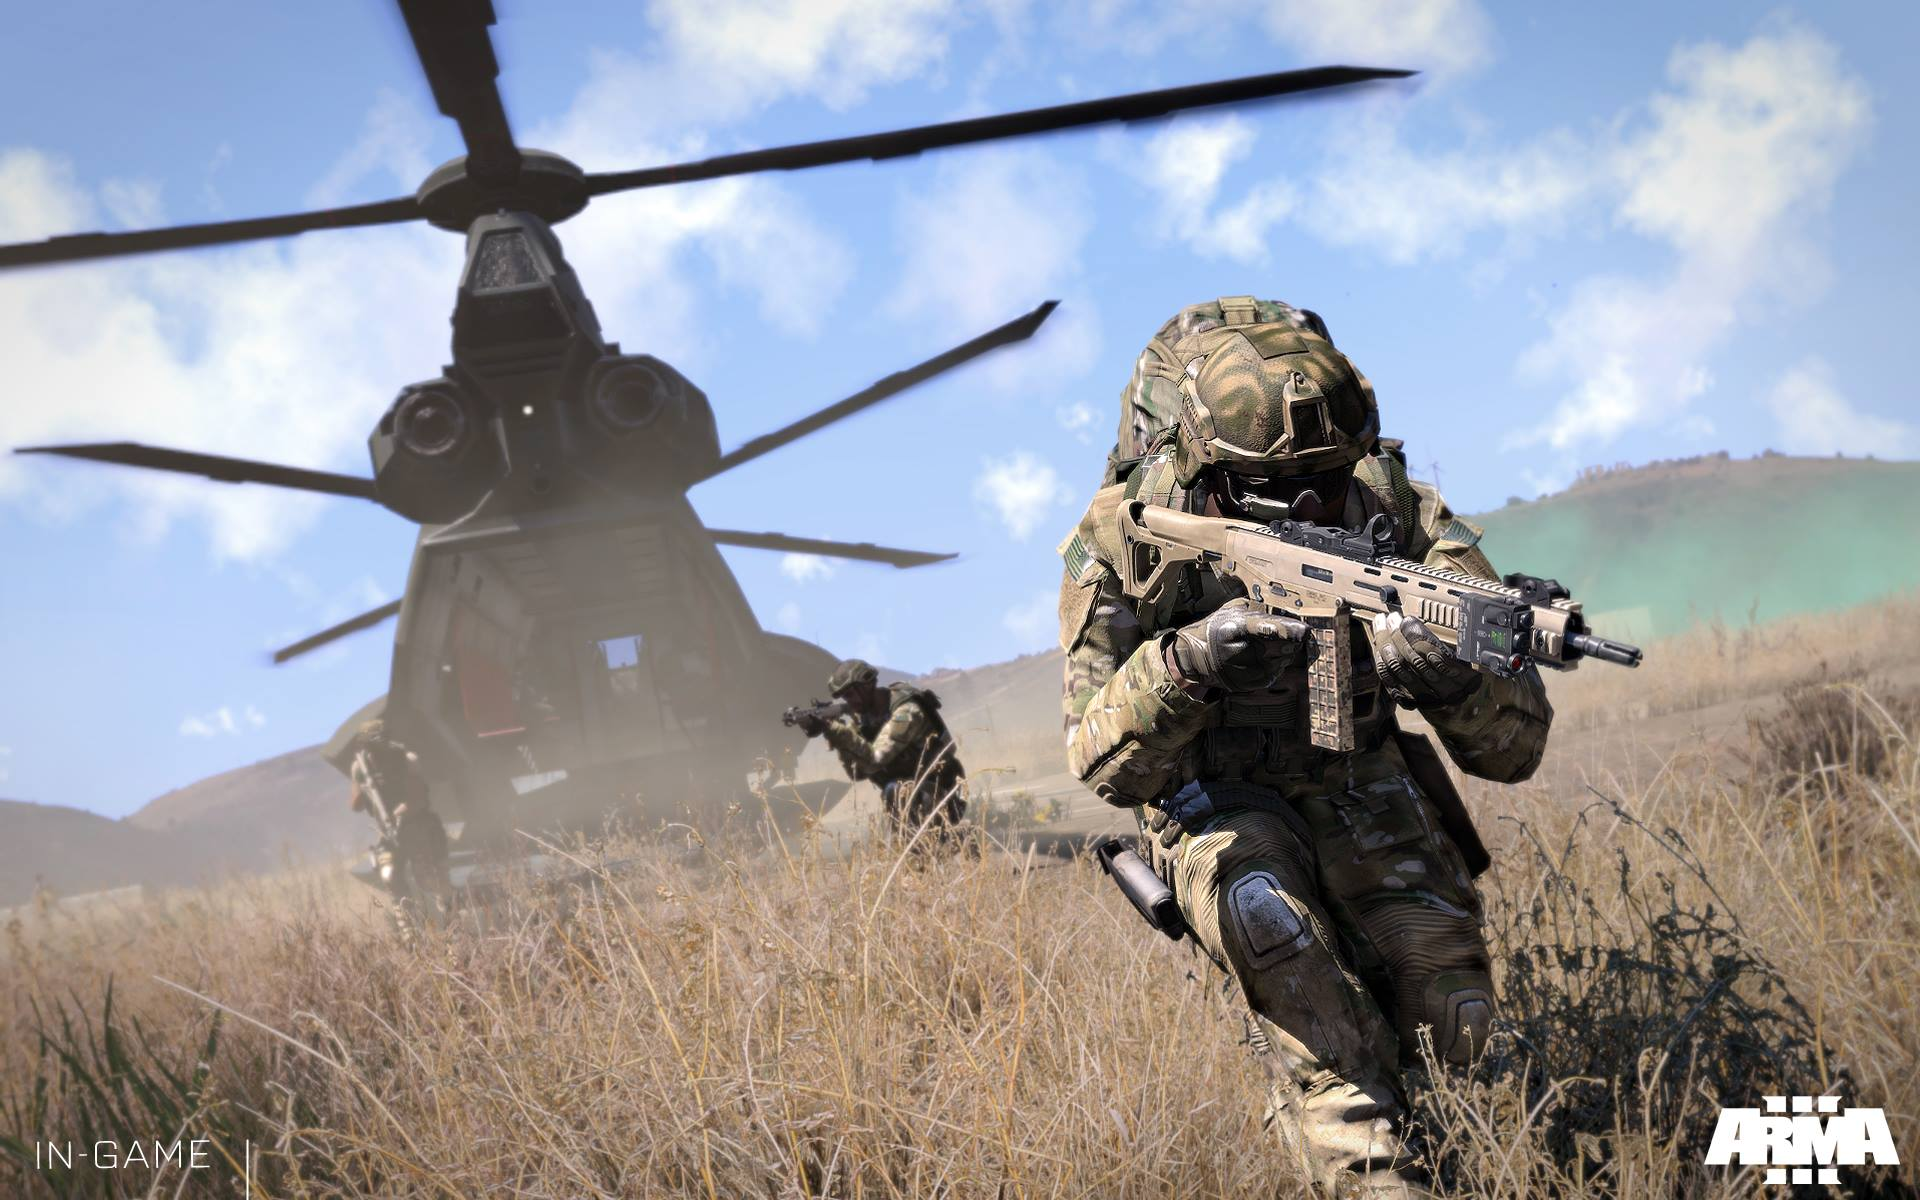 play free helicopter games with Arma3 Helicopters on Barbie Shopping Mall together with Arma3 Helicopters likewise Challenger 2 together with Details additionally Pathfinder  bat Cheatsheet 423514654.